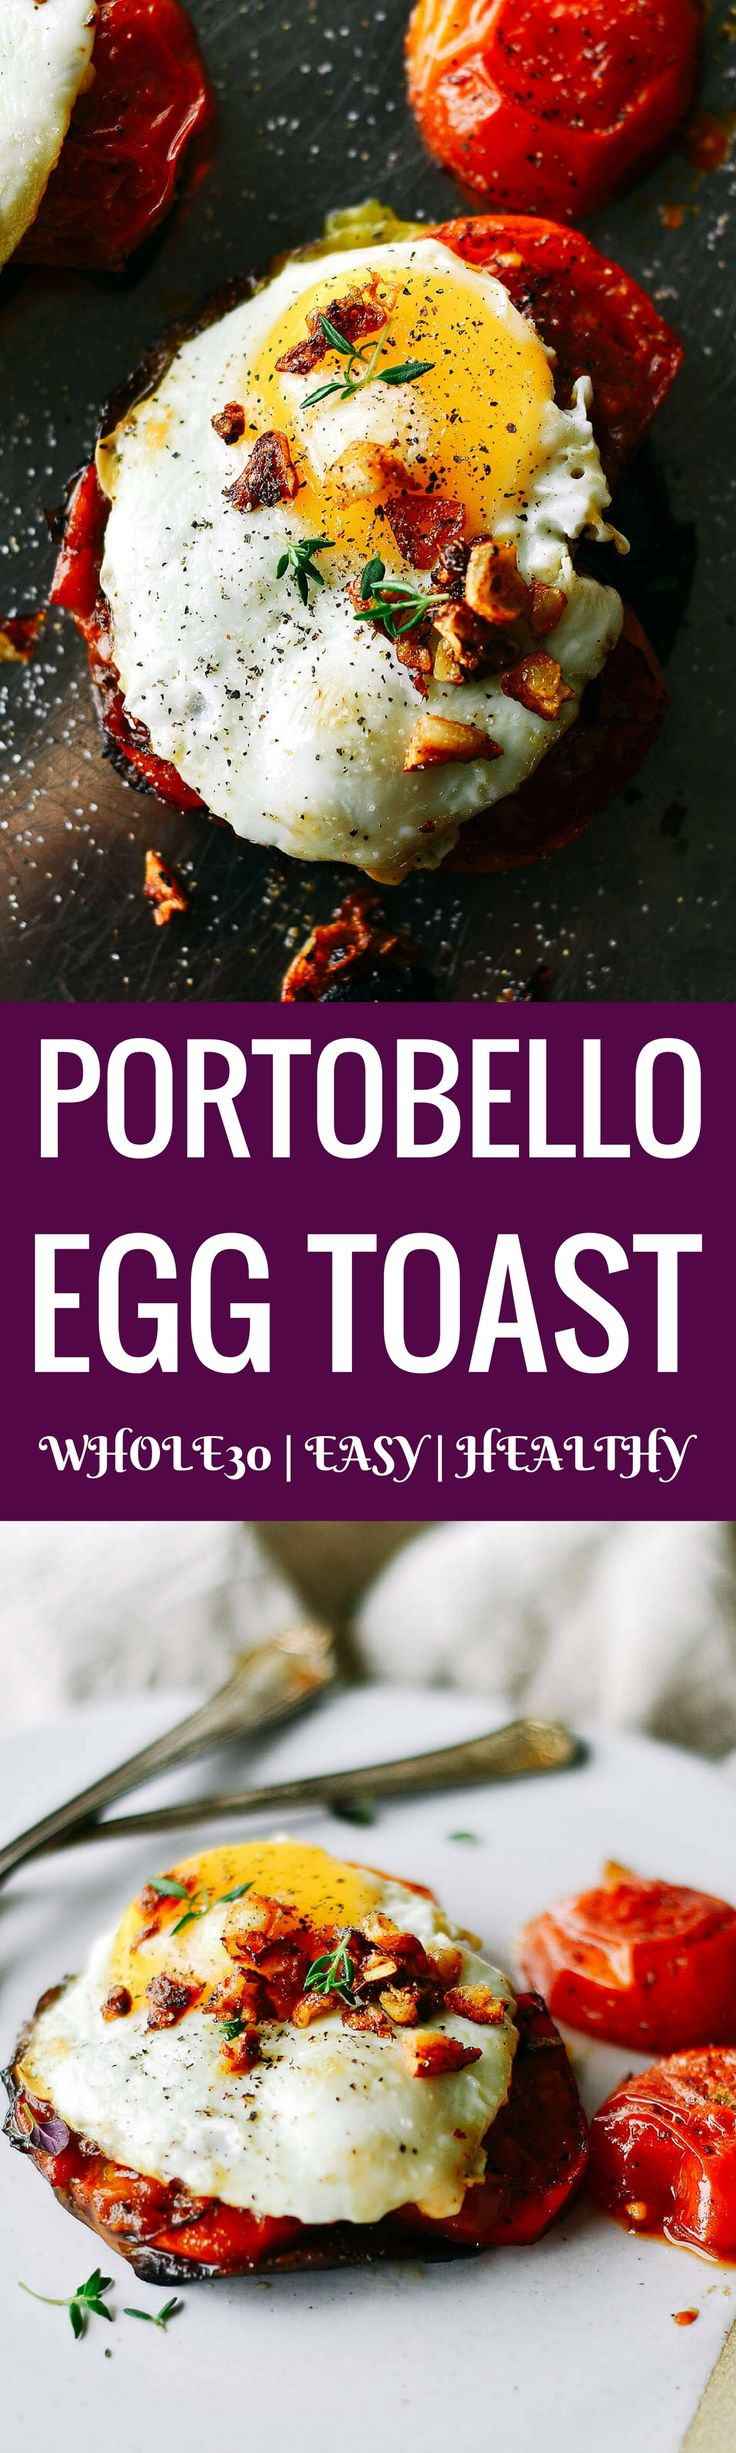 """Beautiful egg """"toast"""" with gorgeous roasted tomatoes and pan roasted portobello mushrooms. Topped off with GARLIC CRISPIES!!, fresh thyme, sea salt, and fresh cracked pepper. A quick, easy, whole30, and paleo breakfast!"""